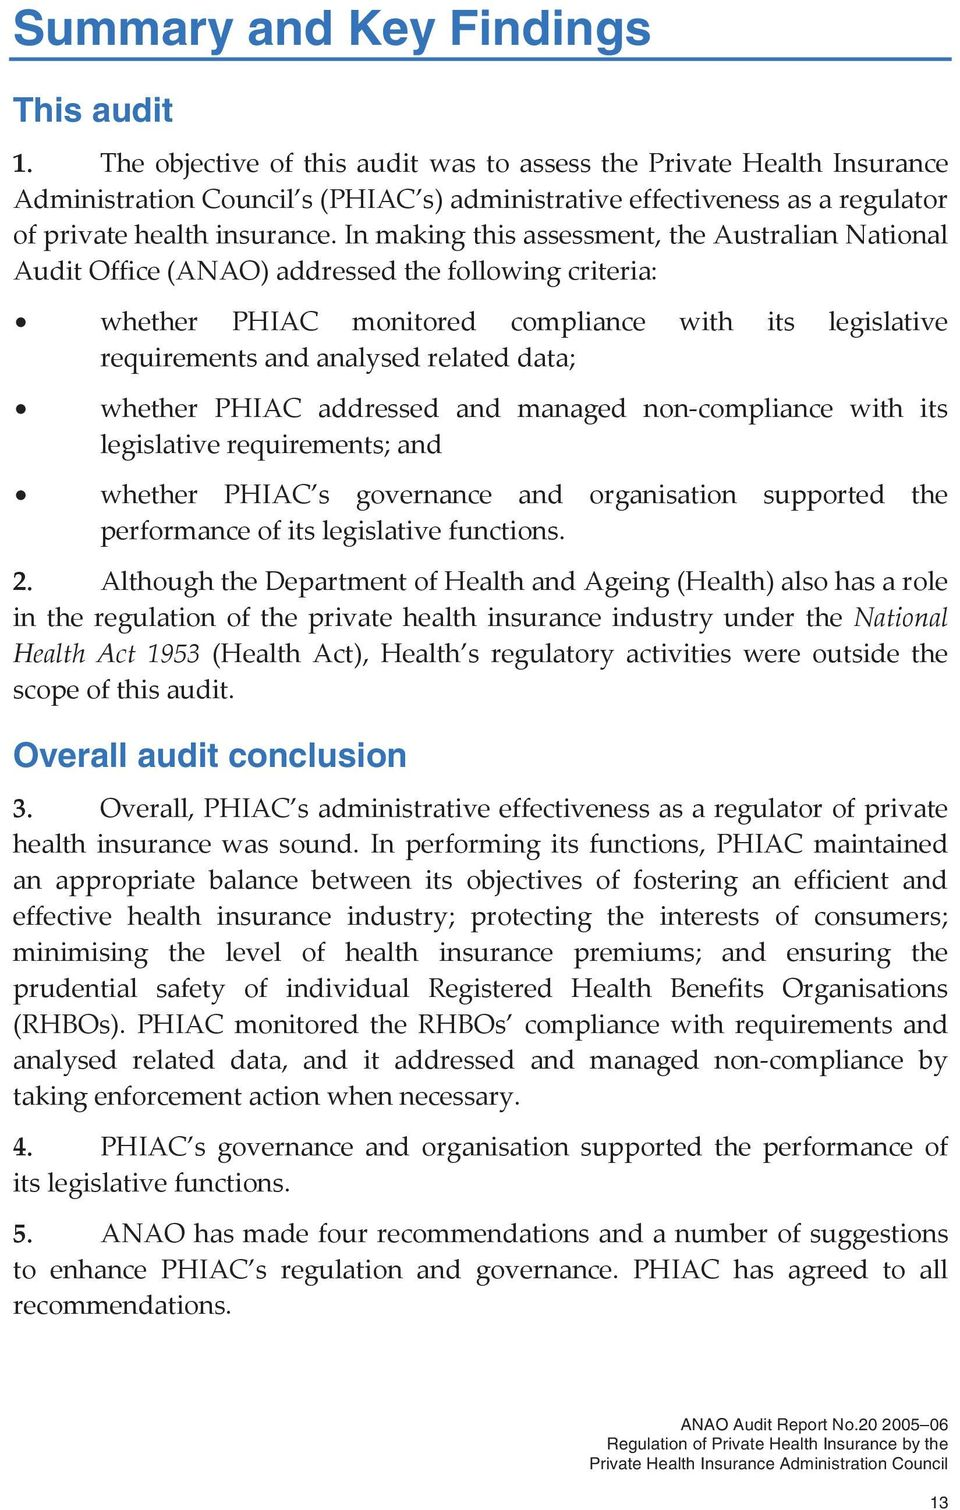 In making this assessment, the Australian National Audit Office (ANAO) addressed the following criteria: whether PHIAC monitored compliance with its legislative requirements and analysed related